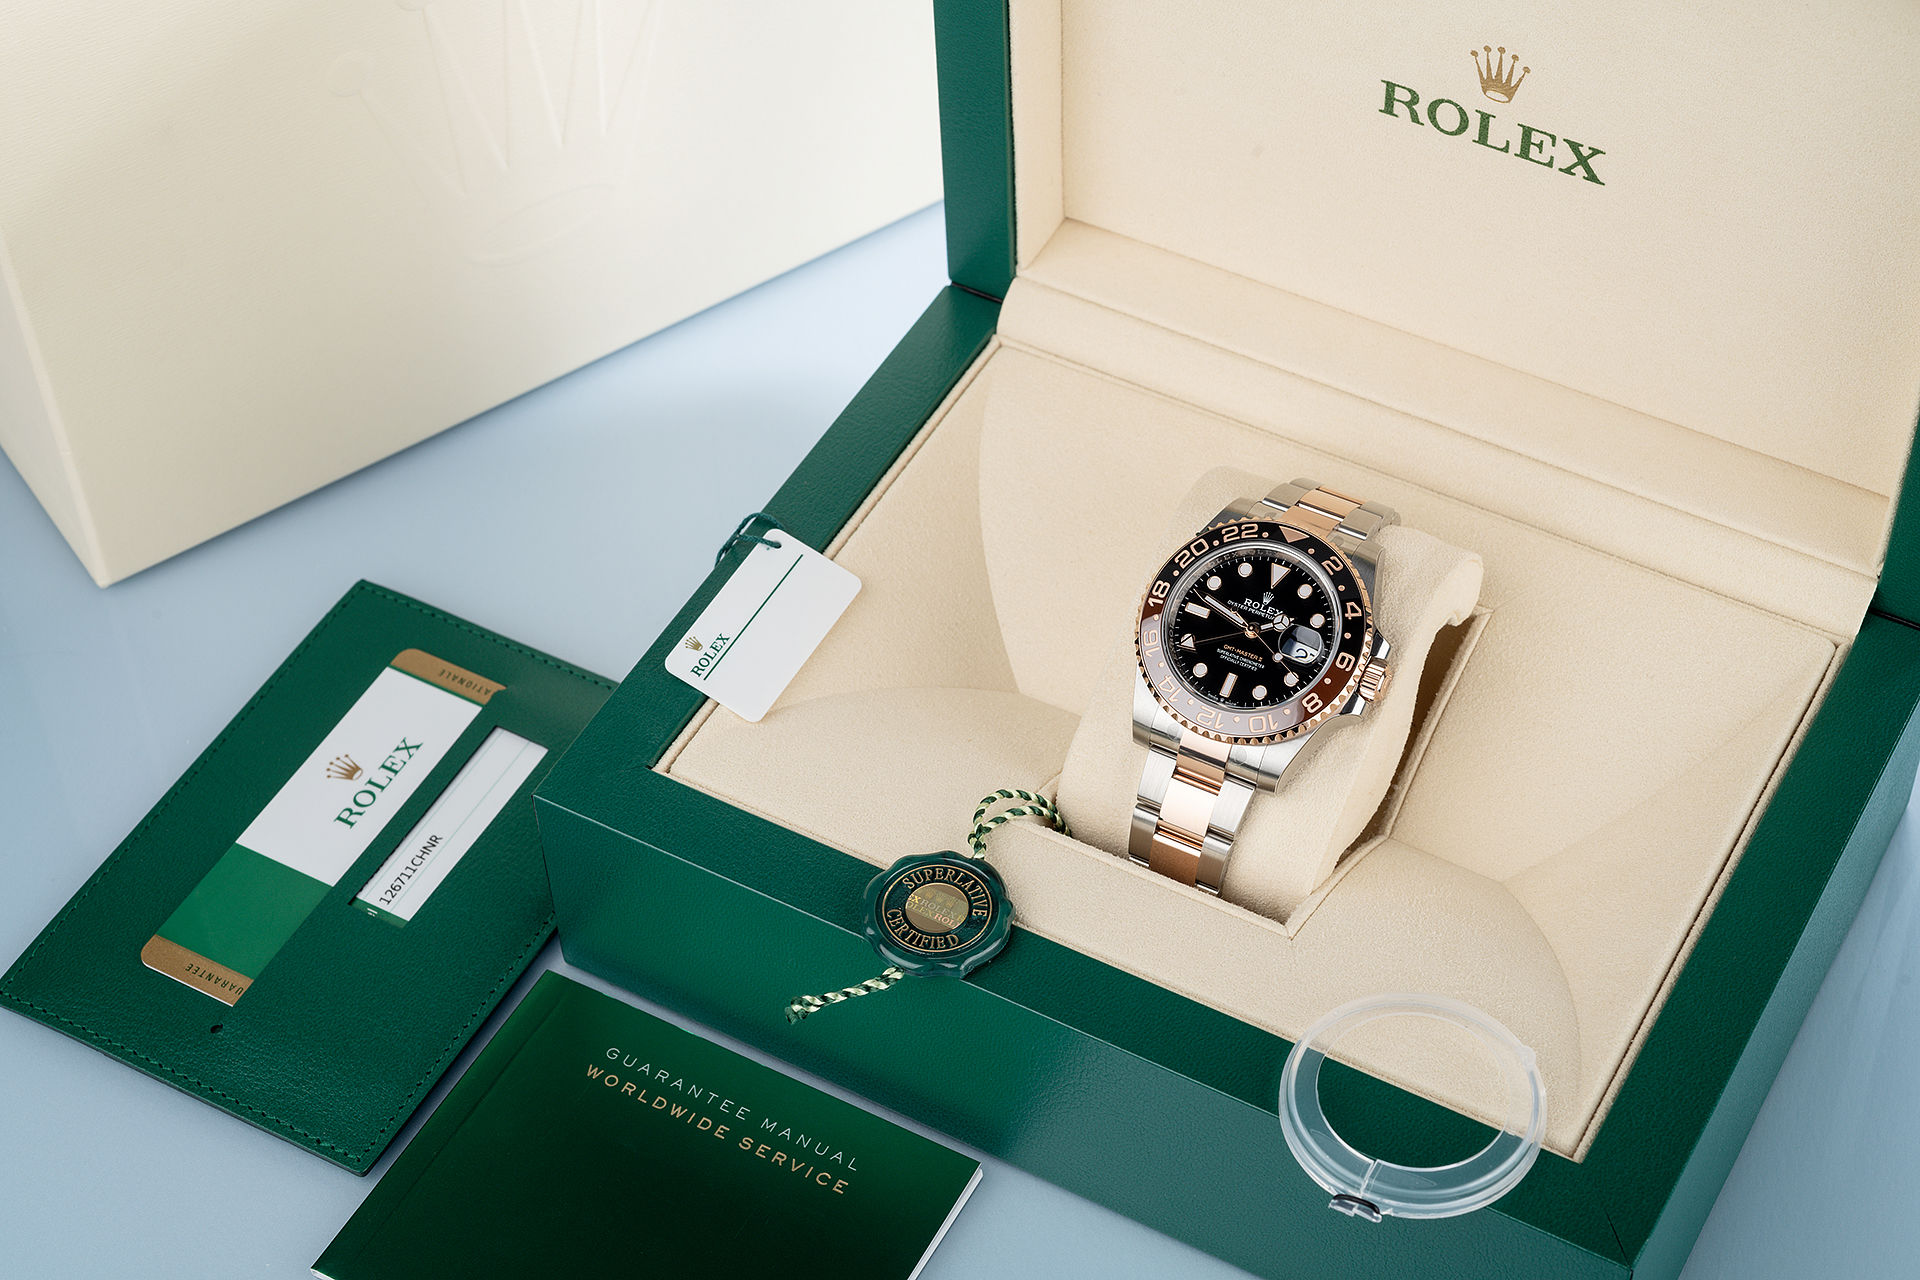 ref 126711CHNR | 'Brand New' Root Beer | Rolex GMT-Master II